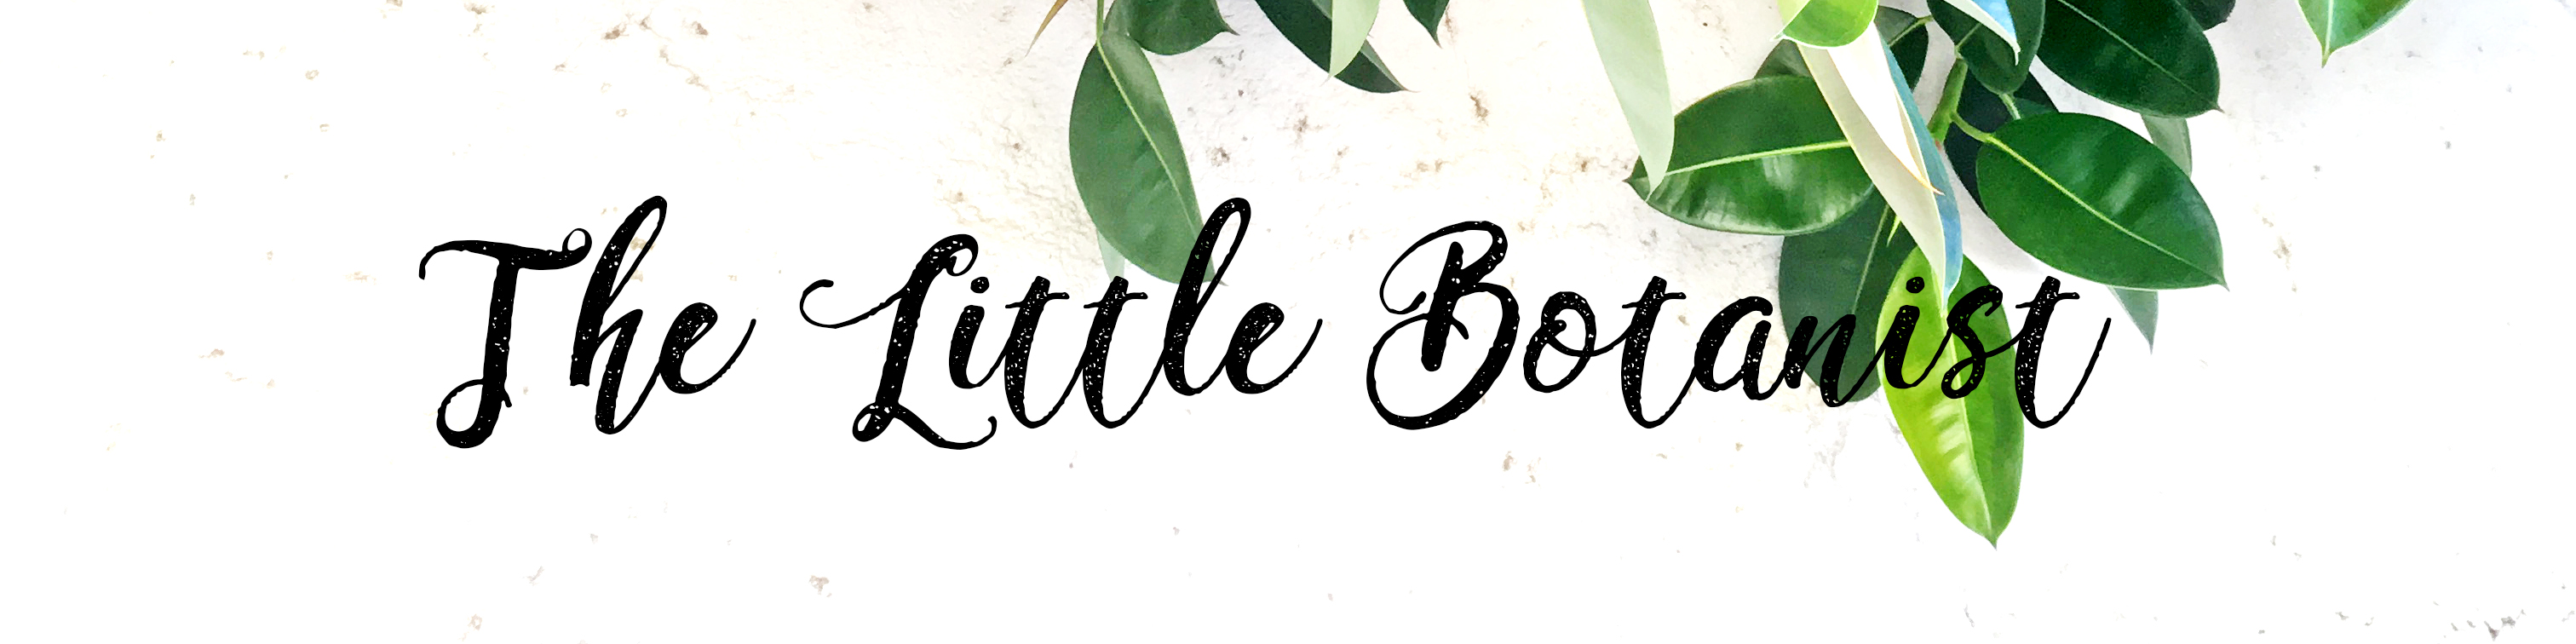 The little botanist